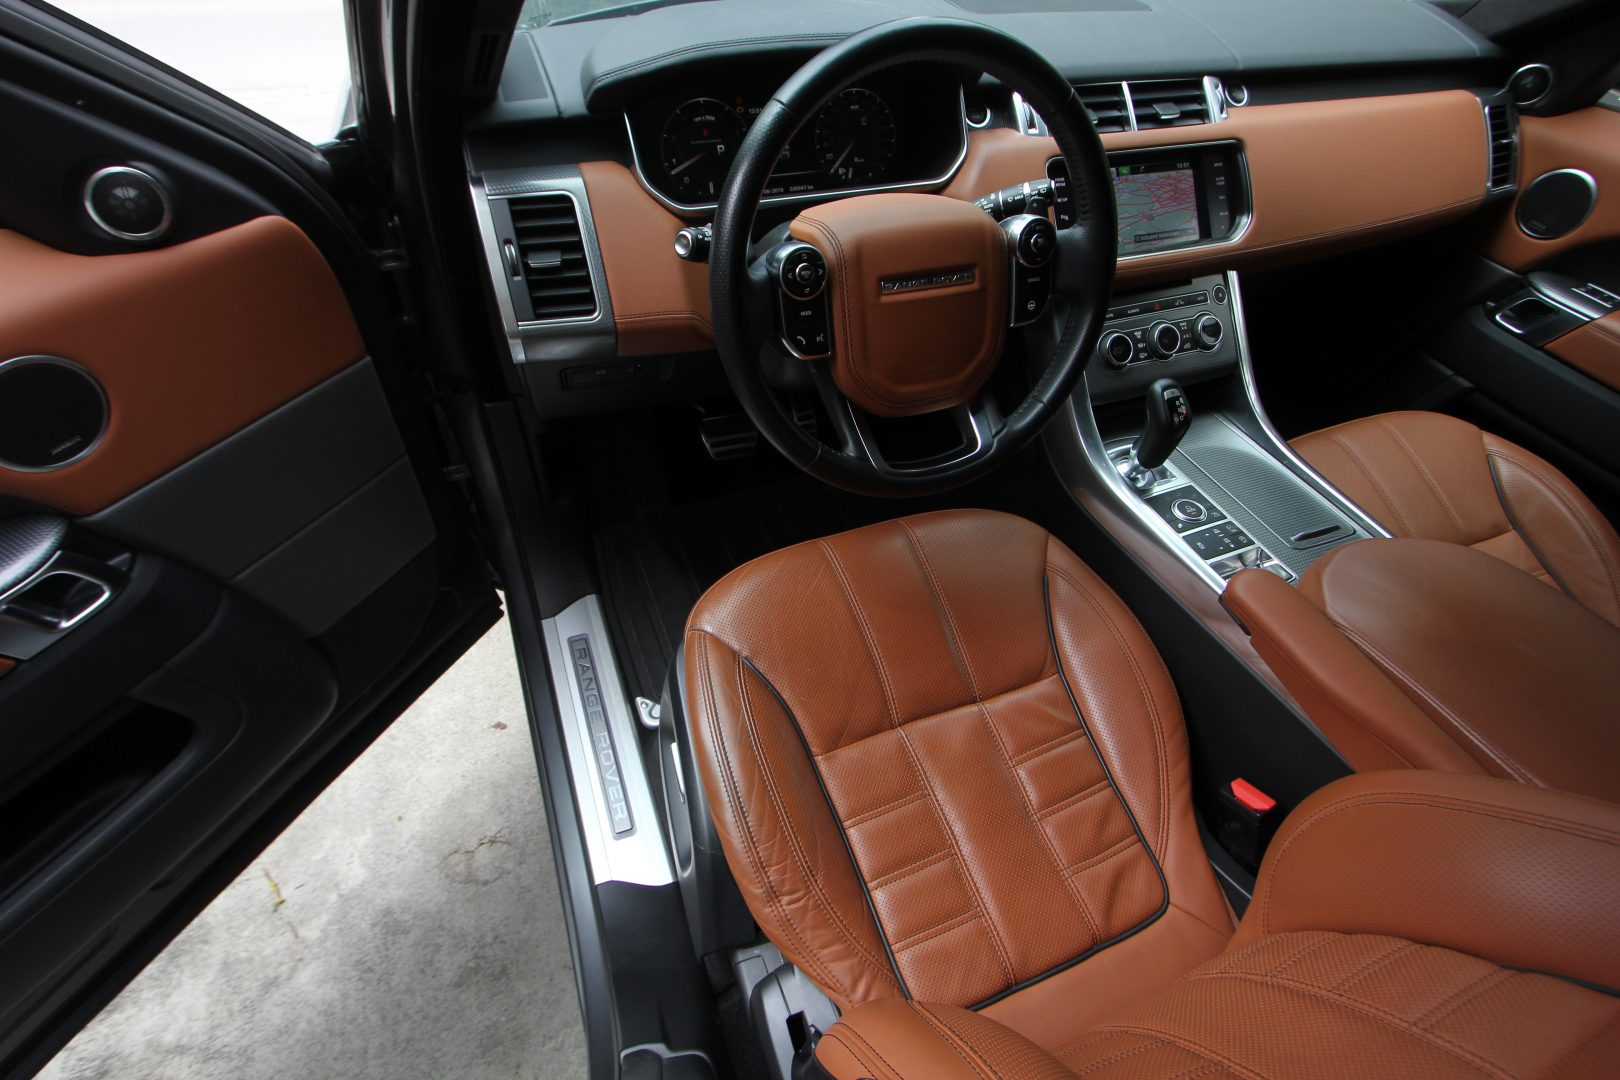 AIL Land Rover Range Rover Sport Autobiography  5.0 V8 13